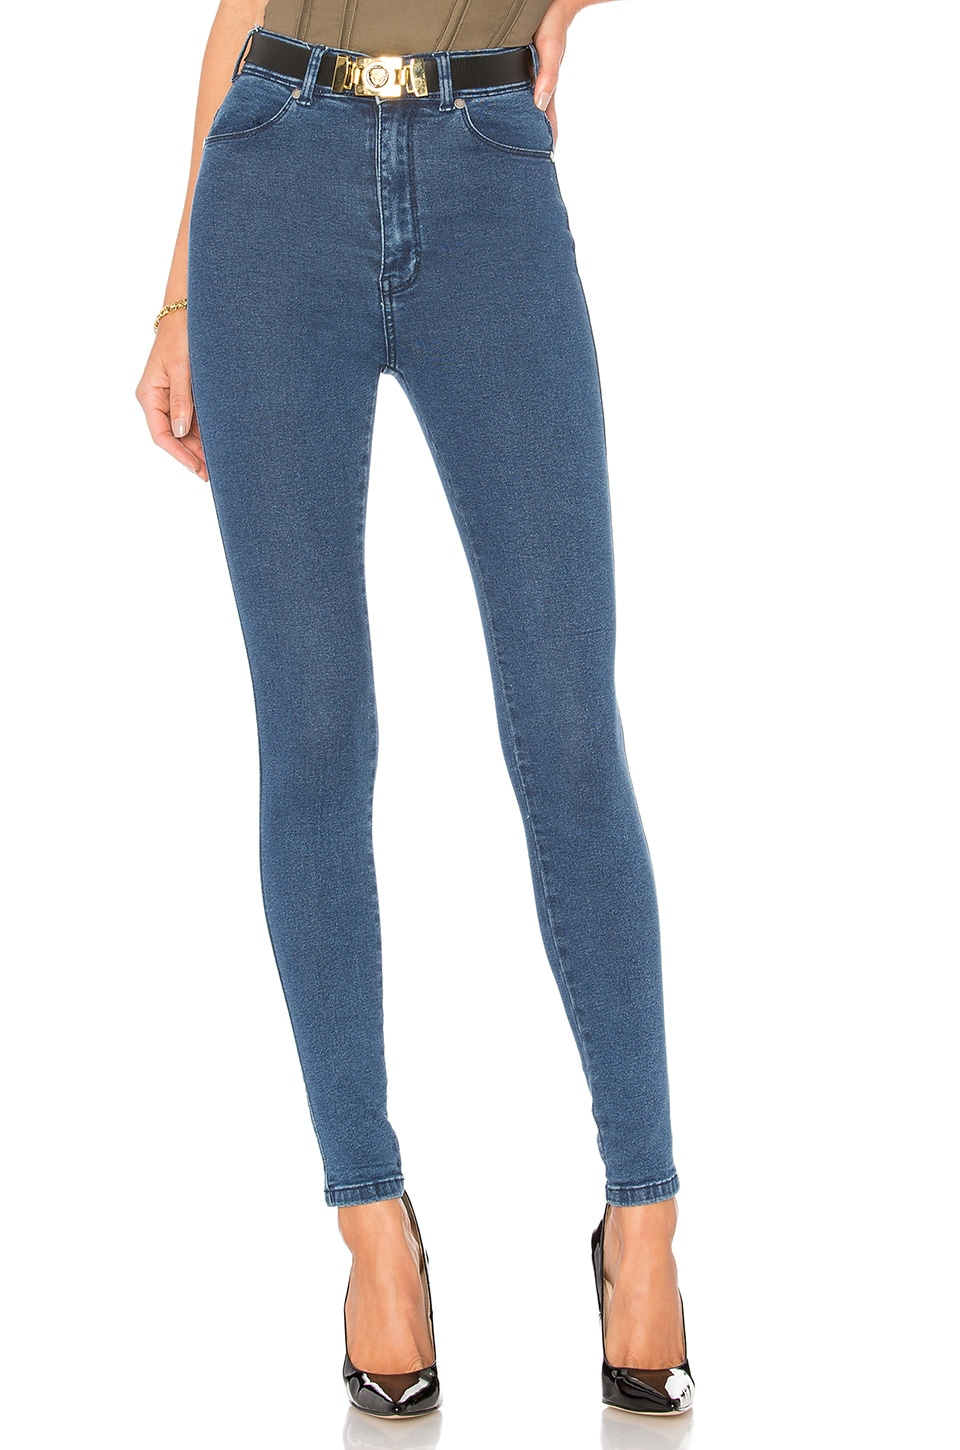 DR. DENIM MOXY JEAN